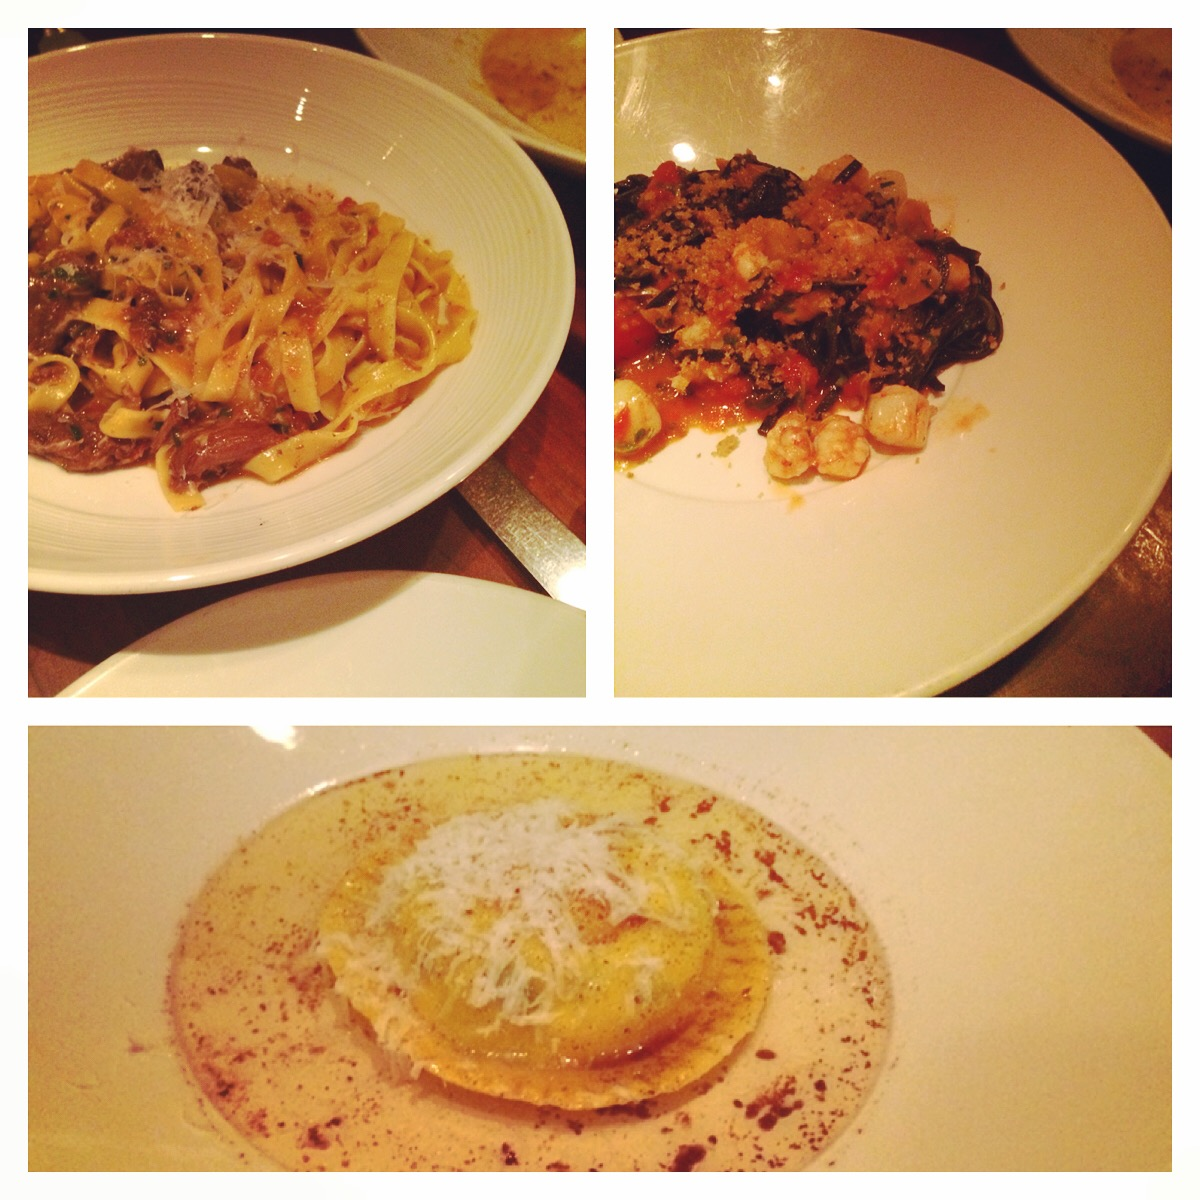 Seven Hills (Nob Hill) - Pasta: Raviolo Uovo, Tagliatelle with Braised Lamb, Chitarrini Neri with Rock Shrimps and Bay Scallops